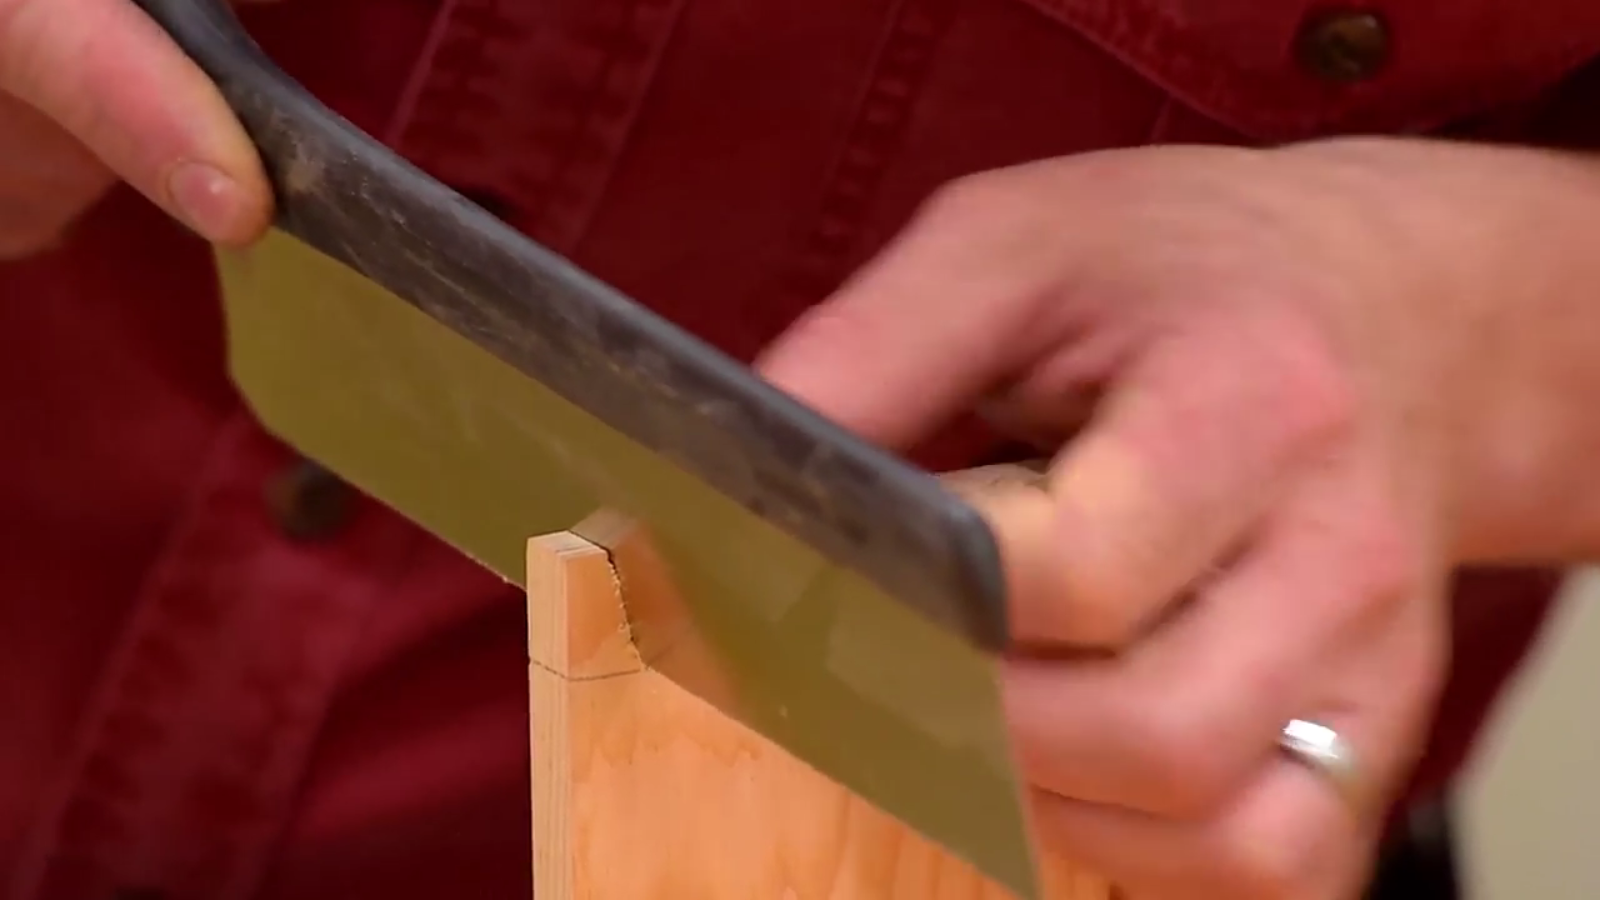 Veritas dovetail saw in action